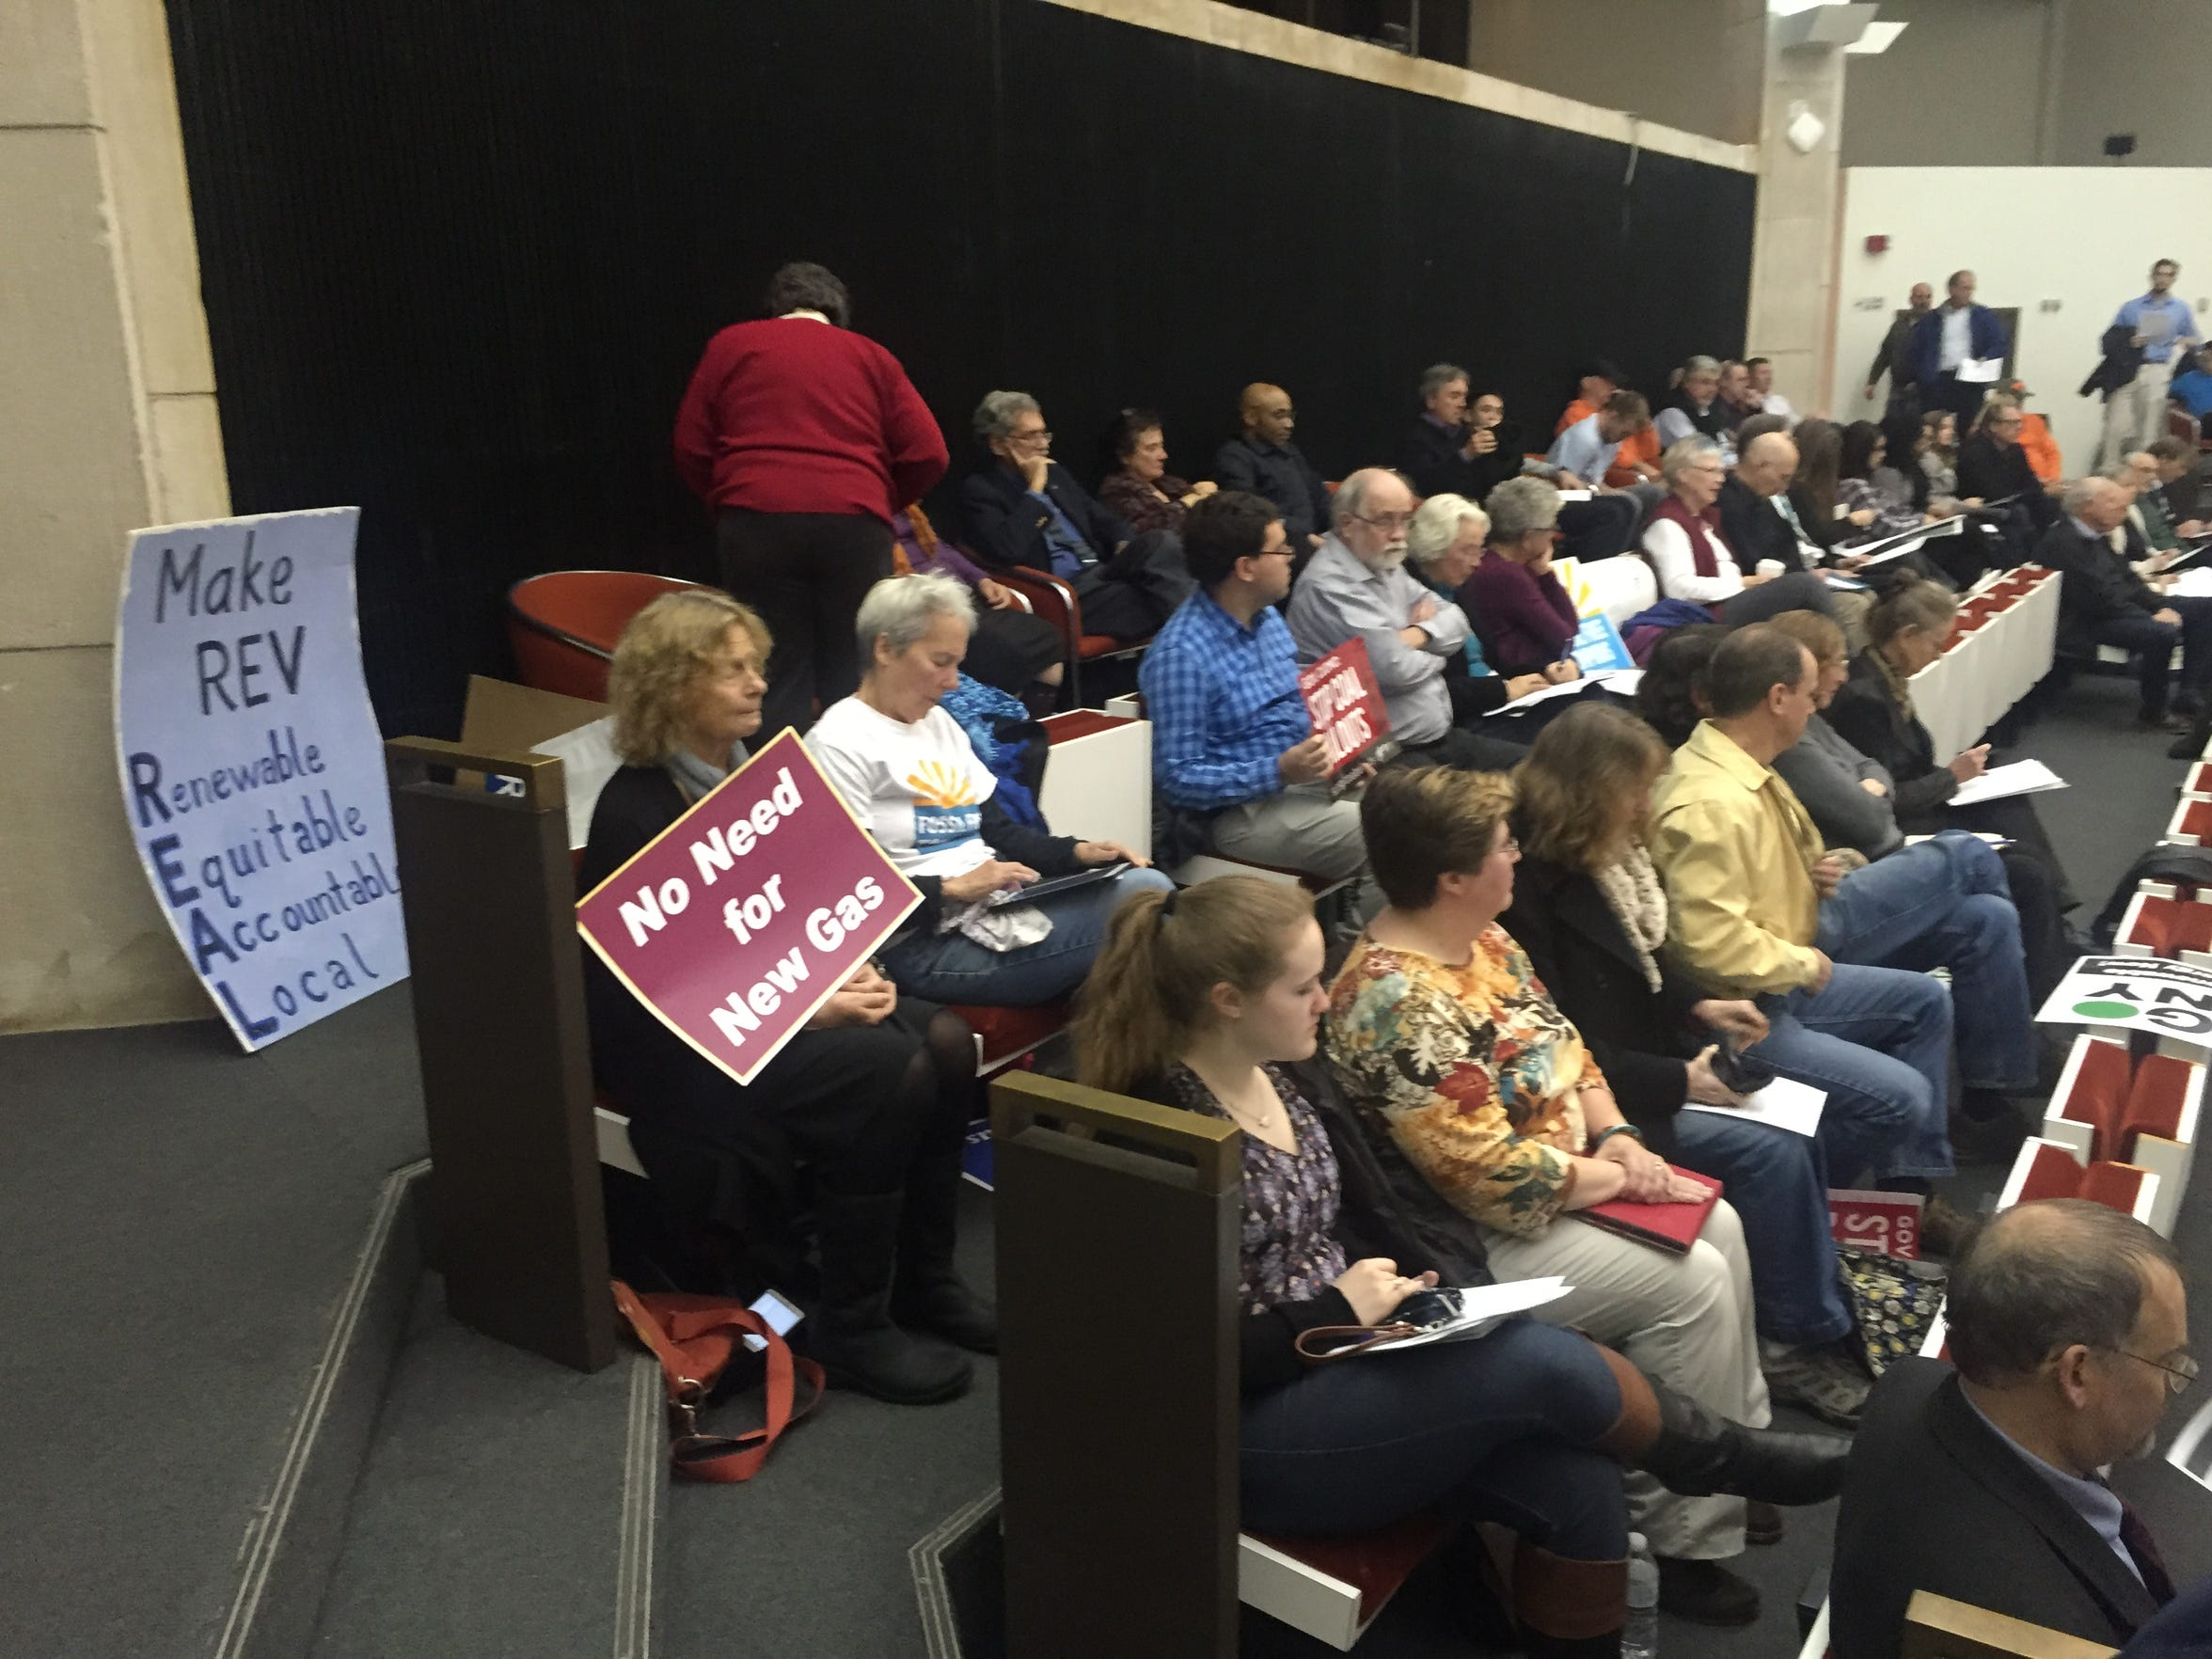 A hearing on Reforming Energy Vision drew about 100